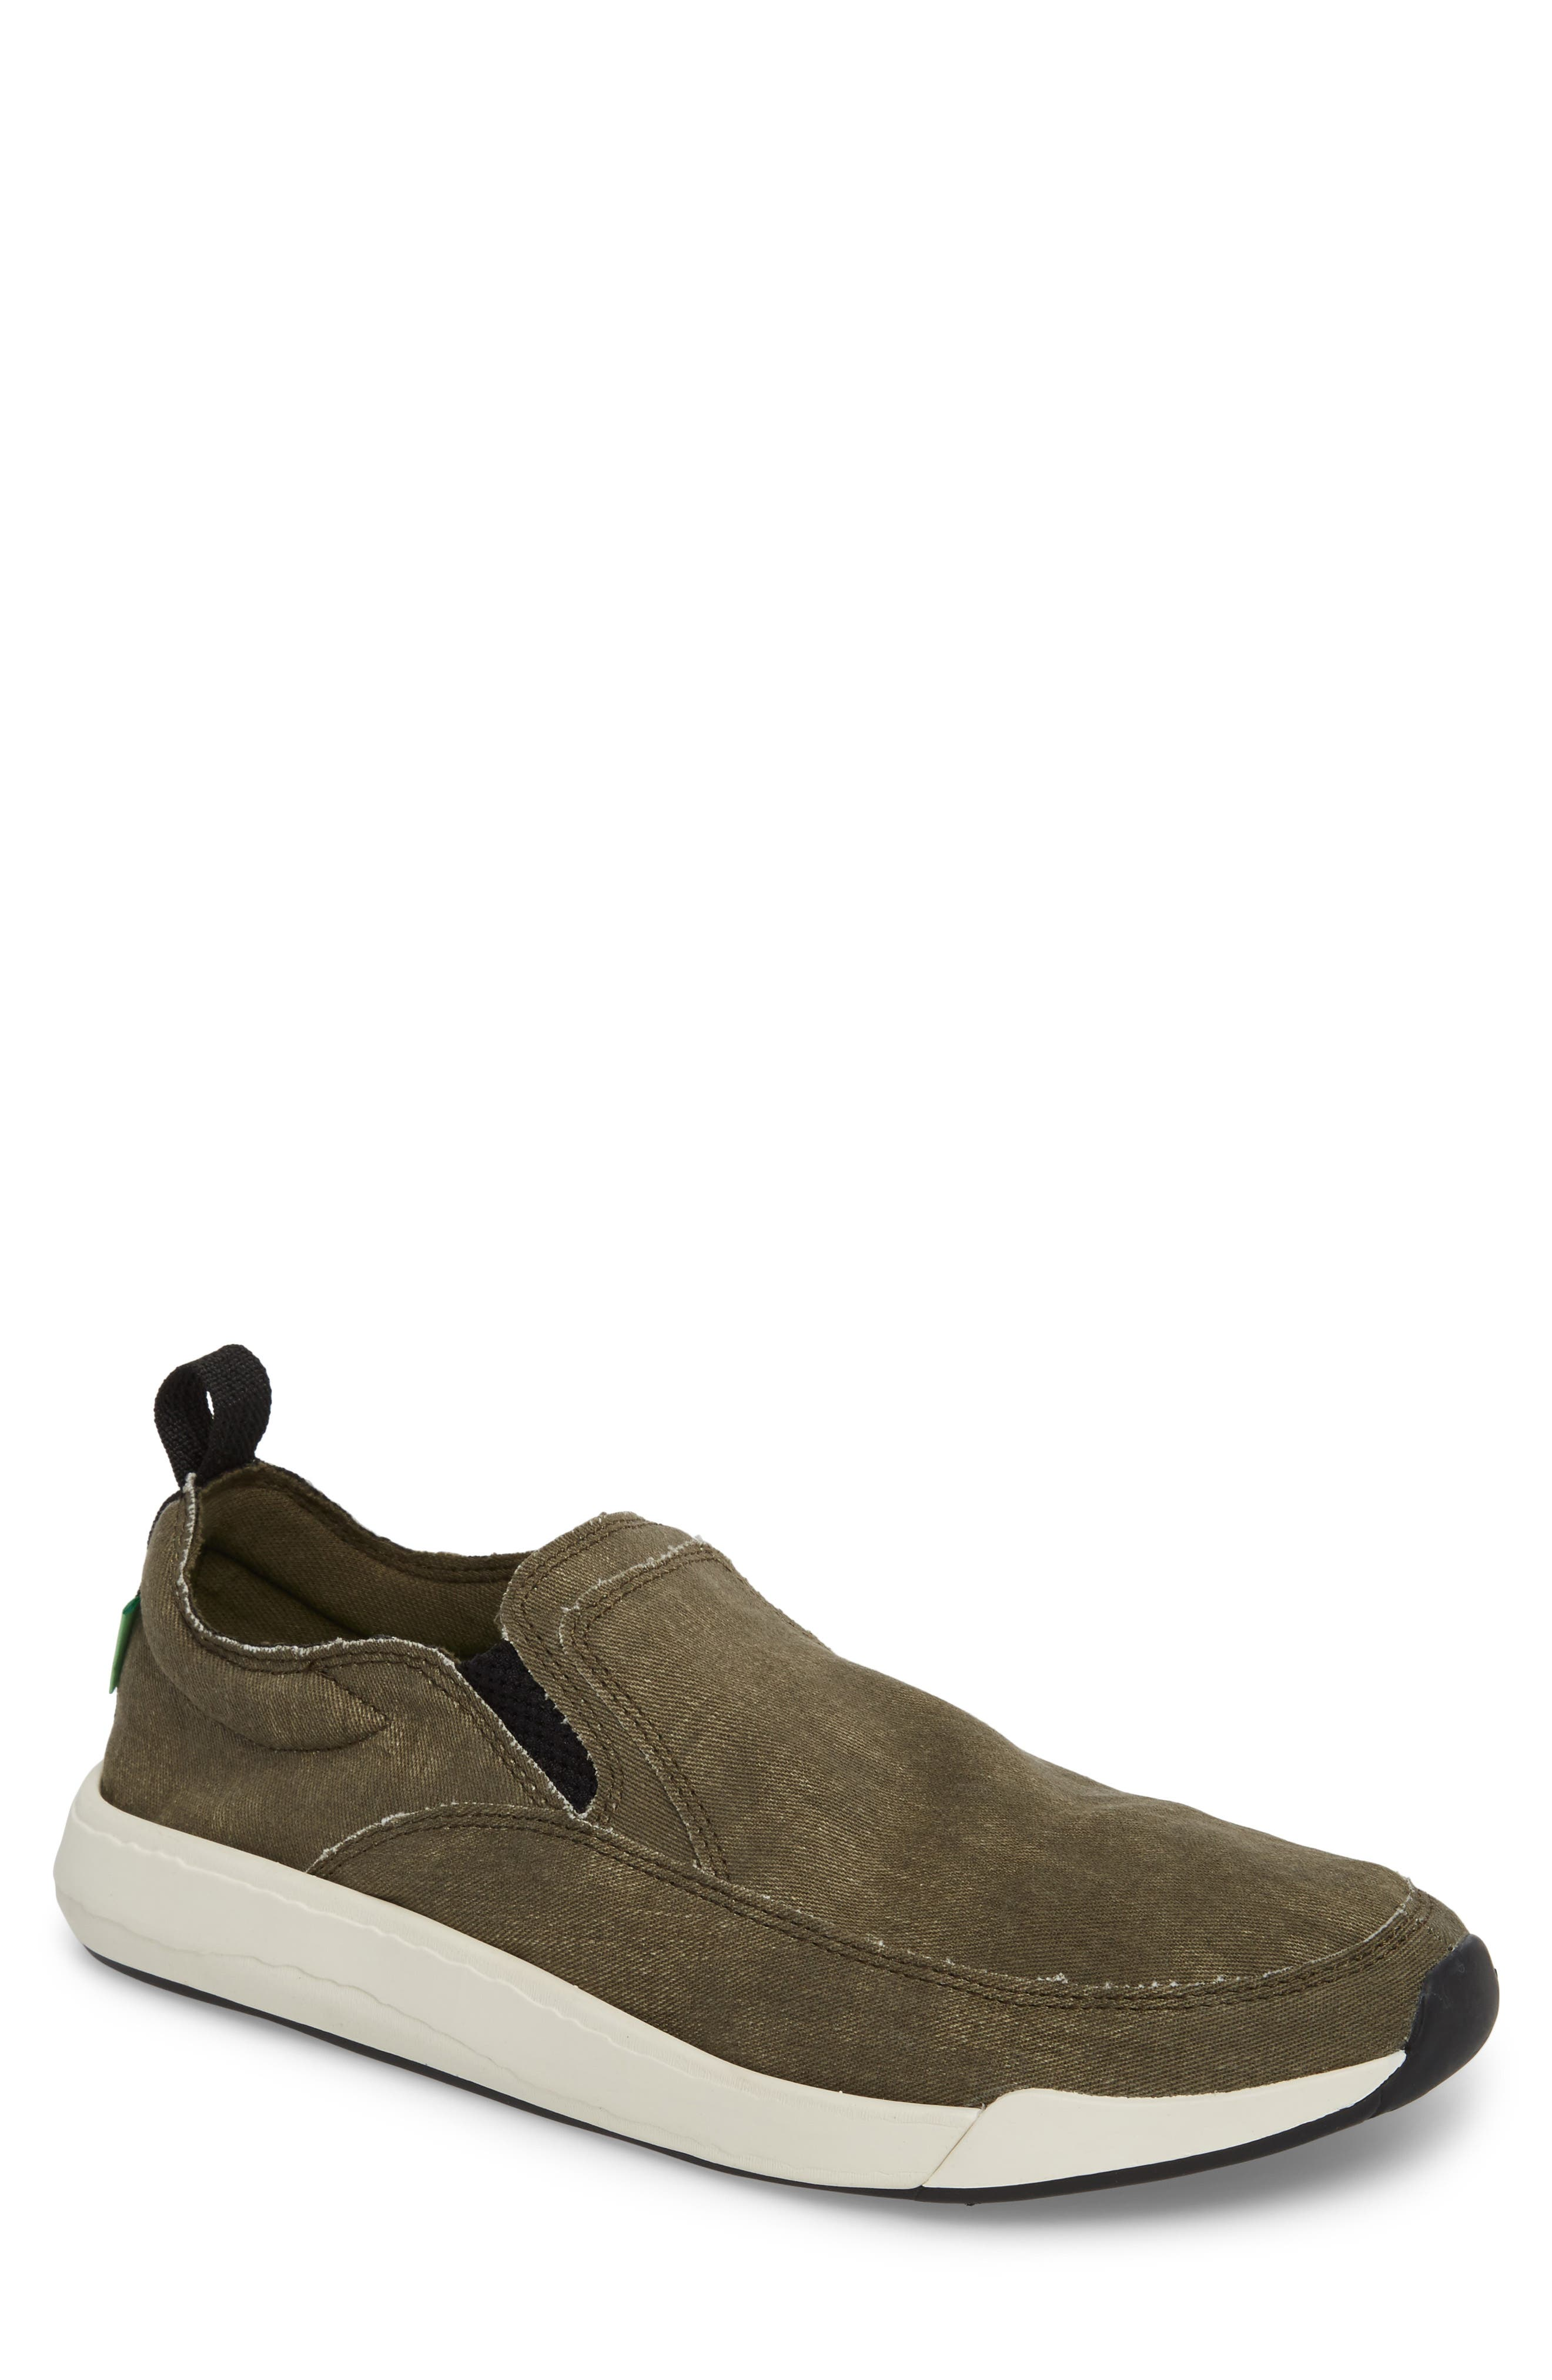 Chiba Quest Slip-On Sneaker,                             Main thumbnail 1, color,                             Olive